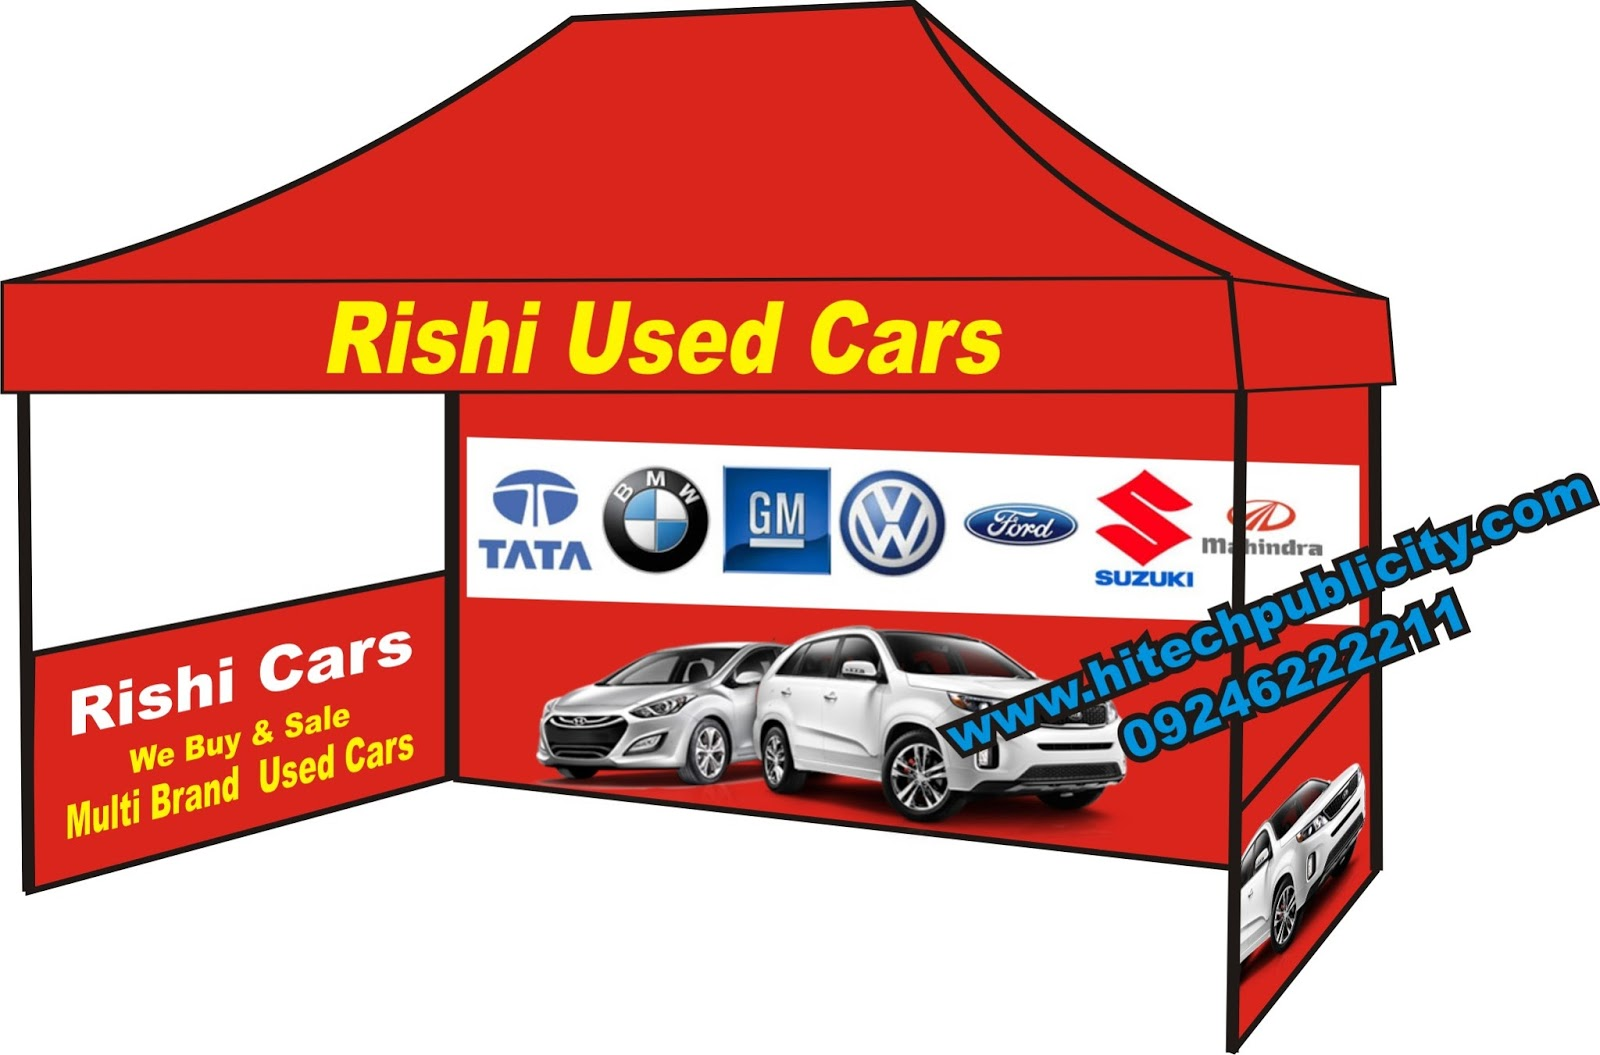 Marketing Demo tent for Car Business  sc 1 st  Nissan Dealer & Nissan Dealer - Marketing Products for Nissan Dealers Advertising ...